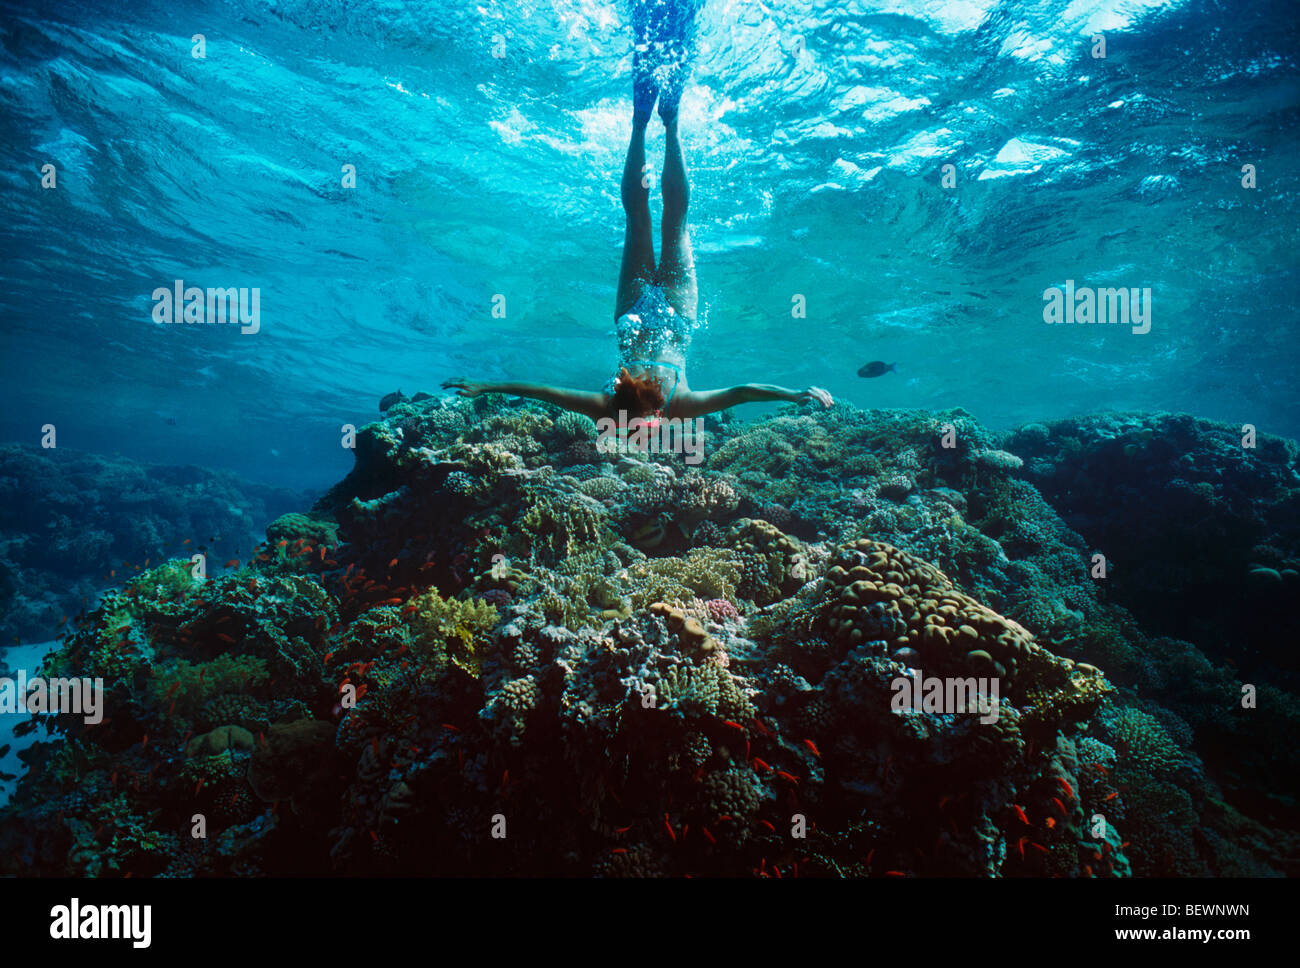 Free diver observes coral reef. Sinai, Egypt - Red Sea - Stock Image